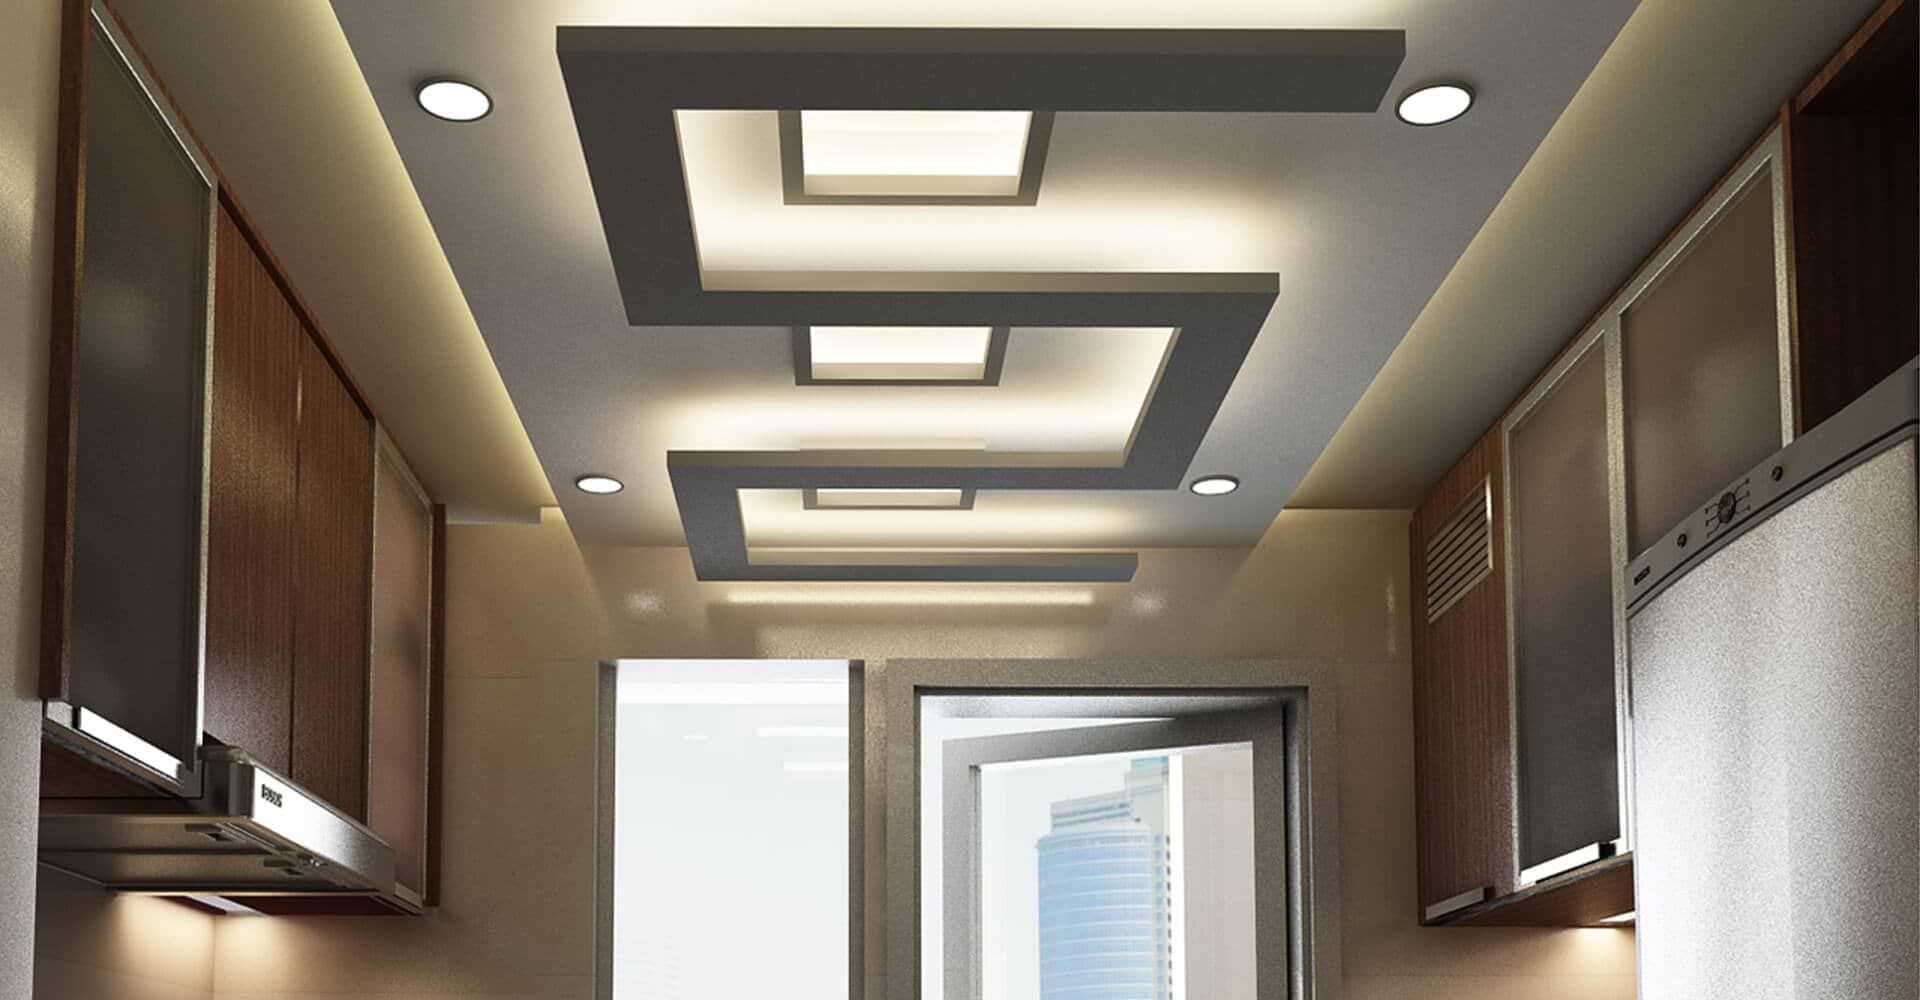 Residential False Ceiling False Ceiling Gypsum Board Drywall Plaster Saint Gobain Gyproc In In 2020 False Ceiling Design Ceiling Design False Ceiling Bedroom